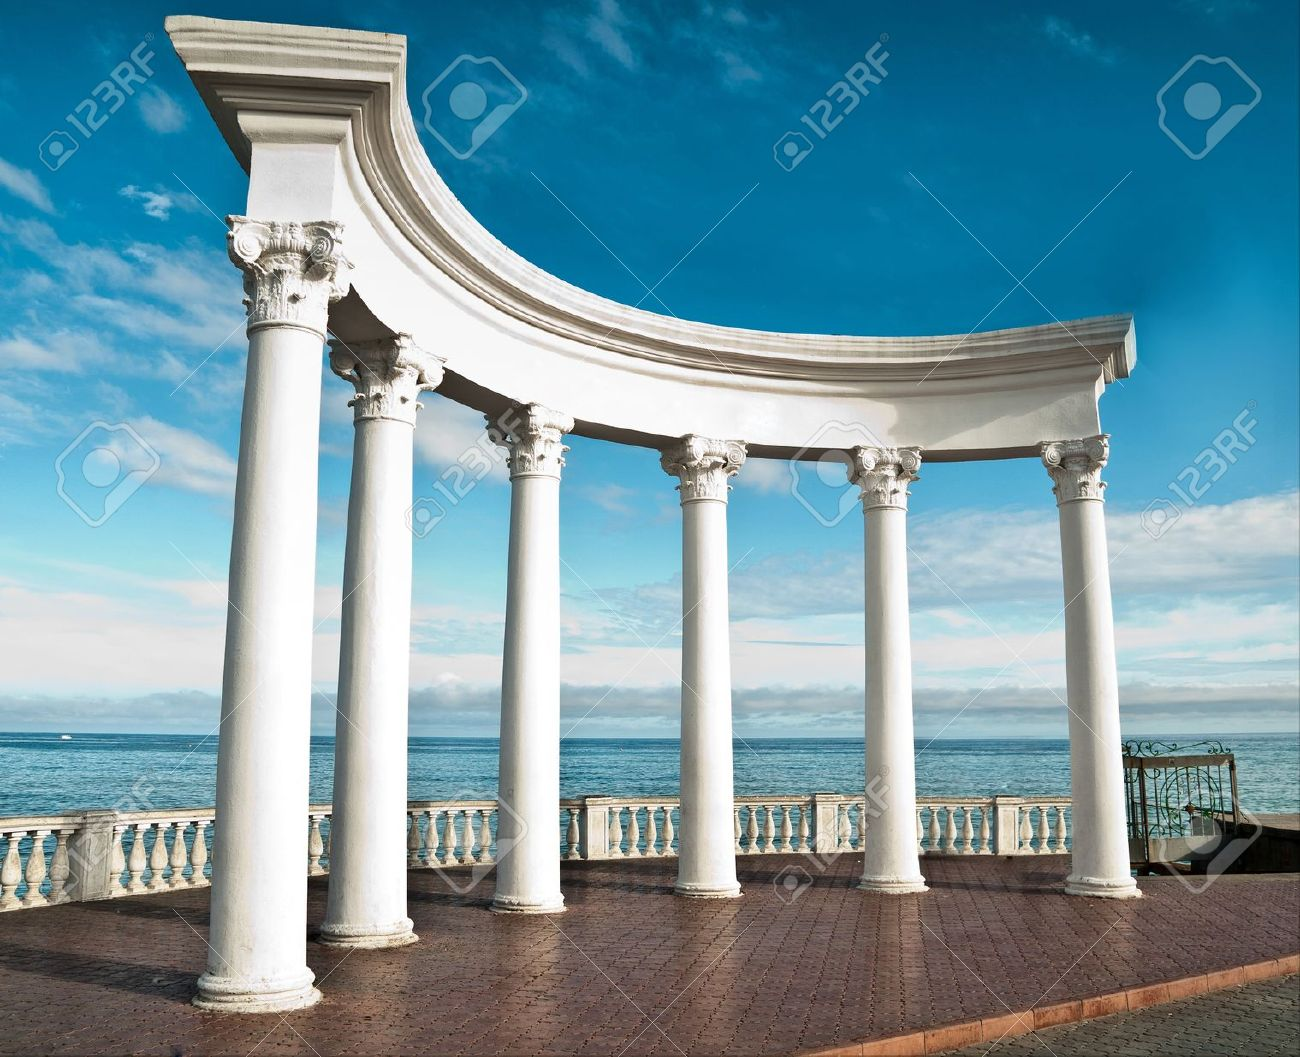 Greek Architecture Columns ancient greek columns against a blue sky and sea stock photo